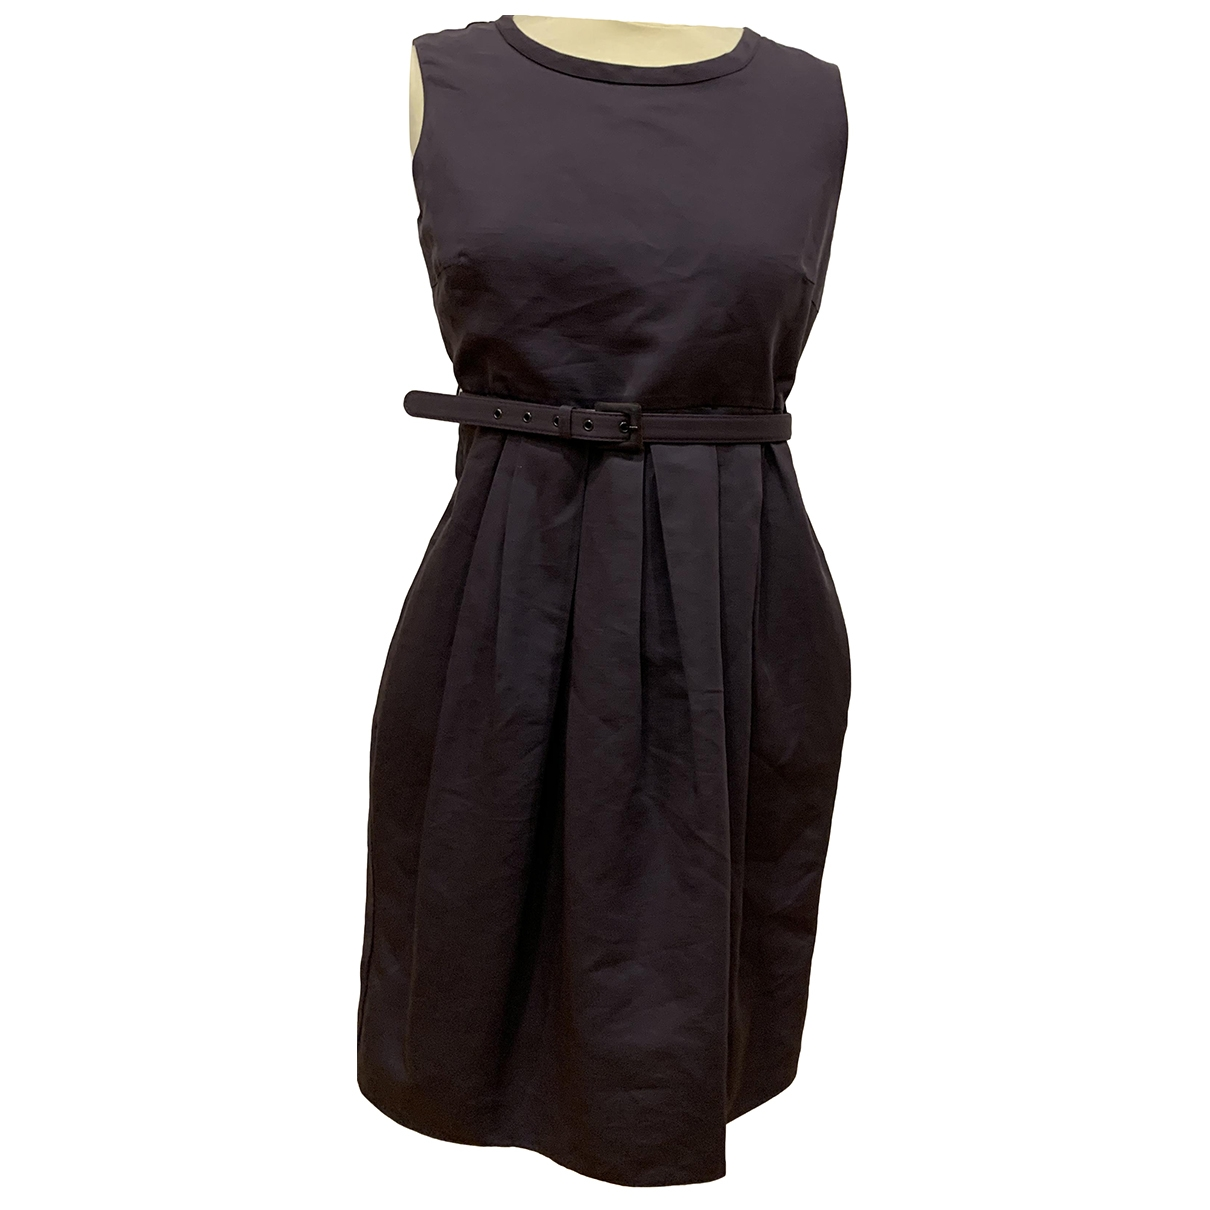 Max Mara 's \N Burgundy Cotton dress for Women 40 IT